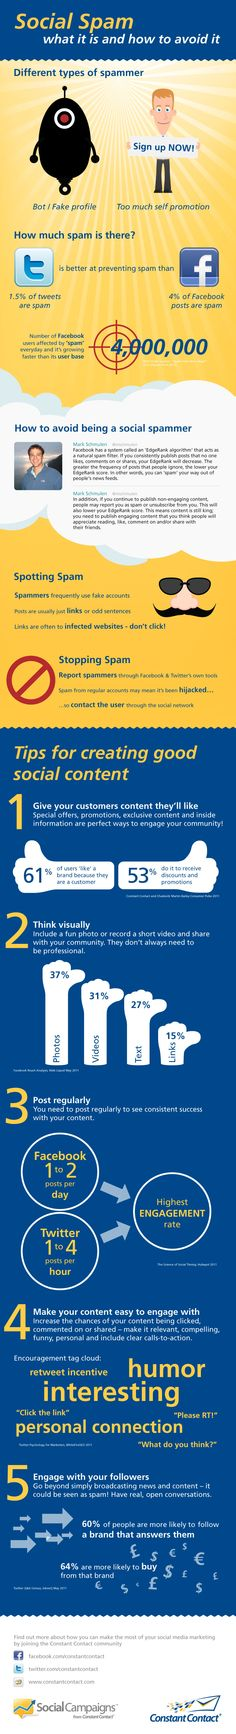 What is Social Spam: what it is and how to avoid it. Tips for creating good social content Marketing Topics, Digital Marketing Strategy, Inbound Marketing, Online Marketing, Social Media Marketing, Internet Marketing, Social Media Impact, Social Media Tips, Social Networks